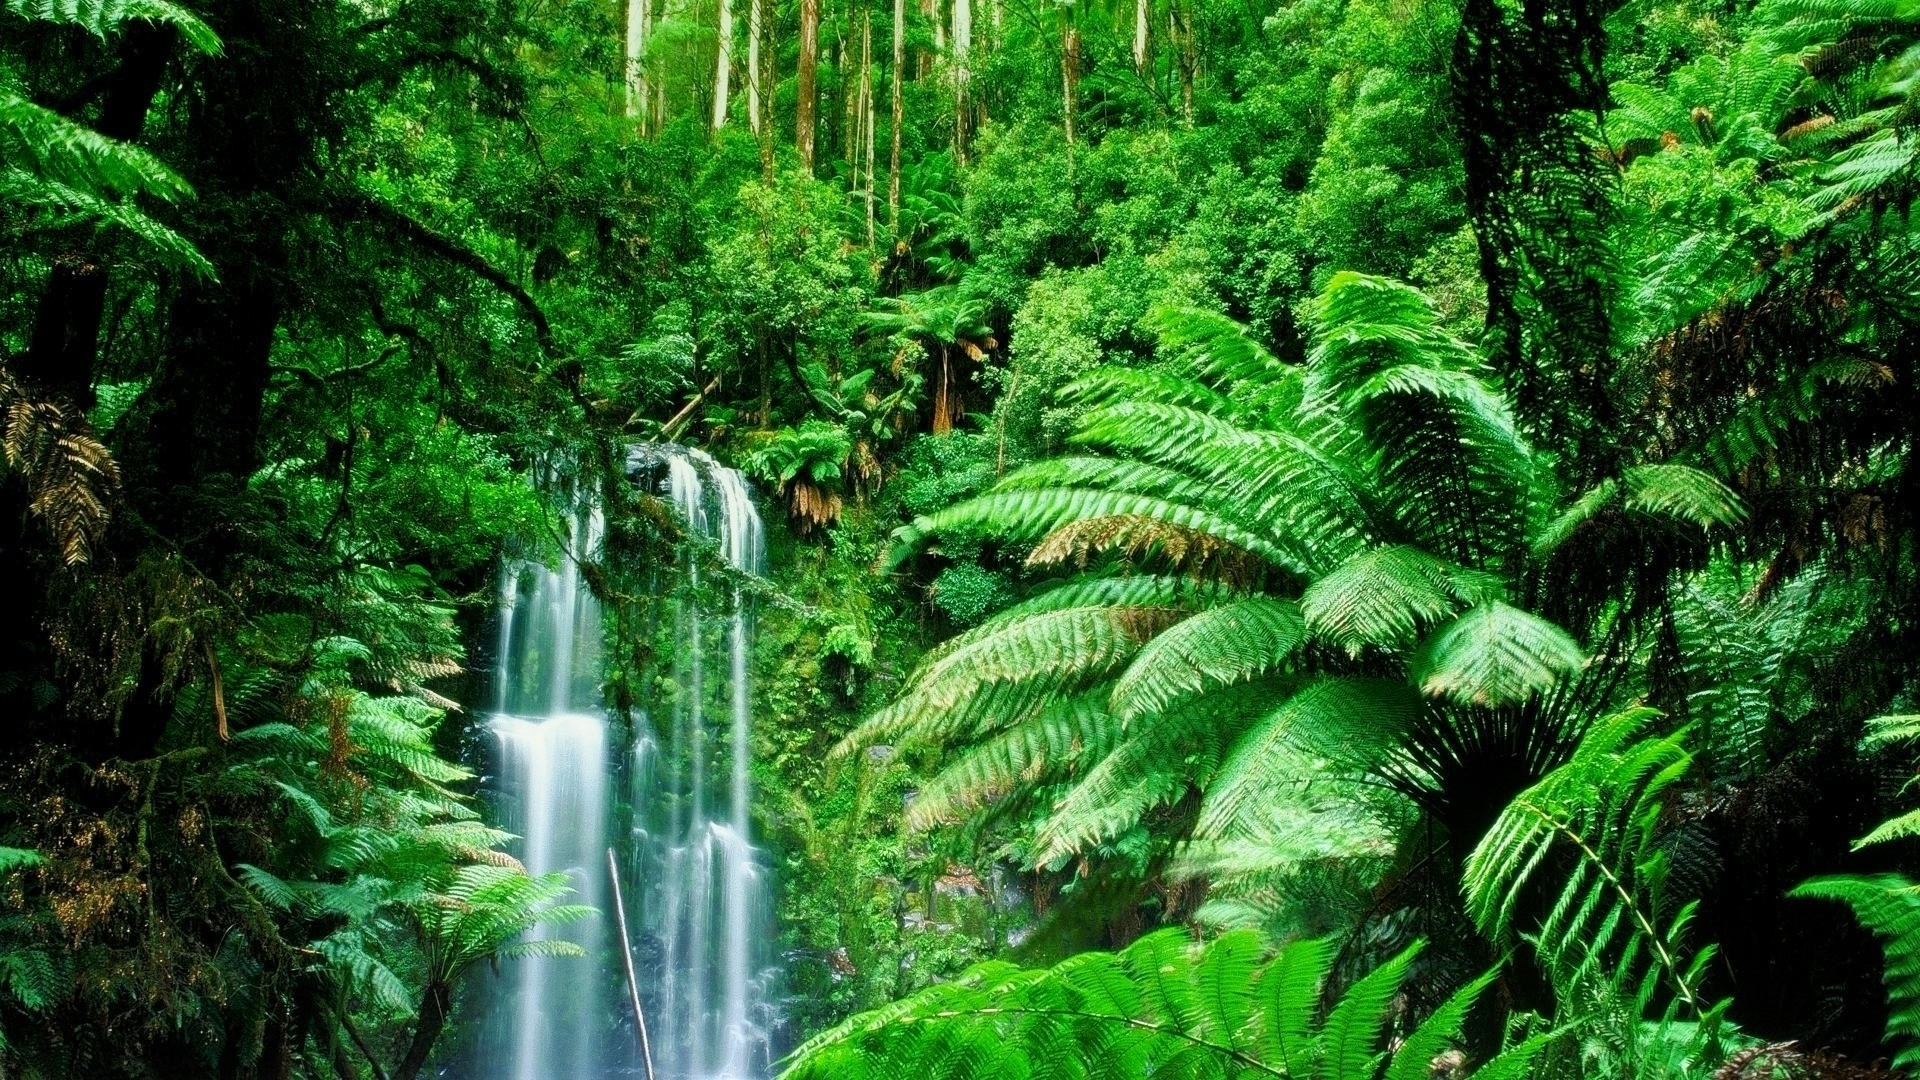 Green landscapes trees jungle forest rainforest wallpaper 1920x1080 1920x1080